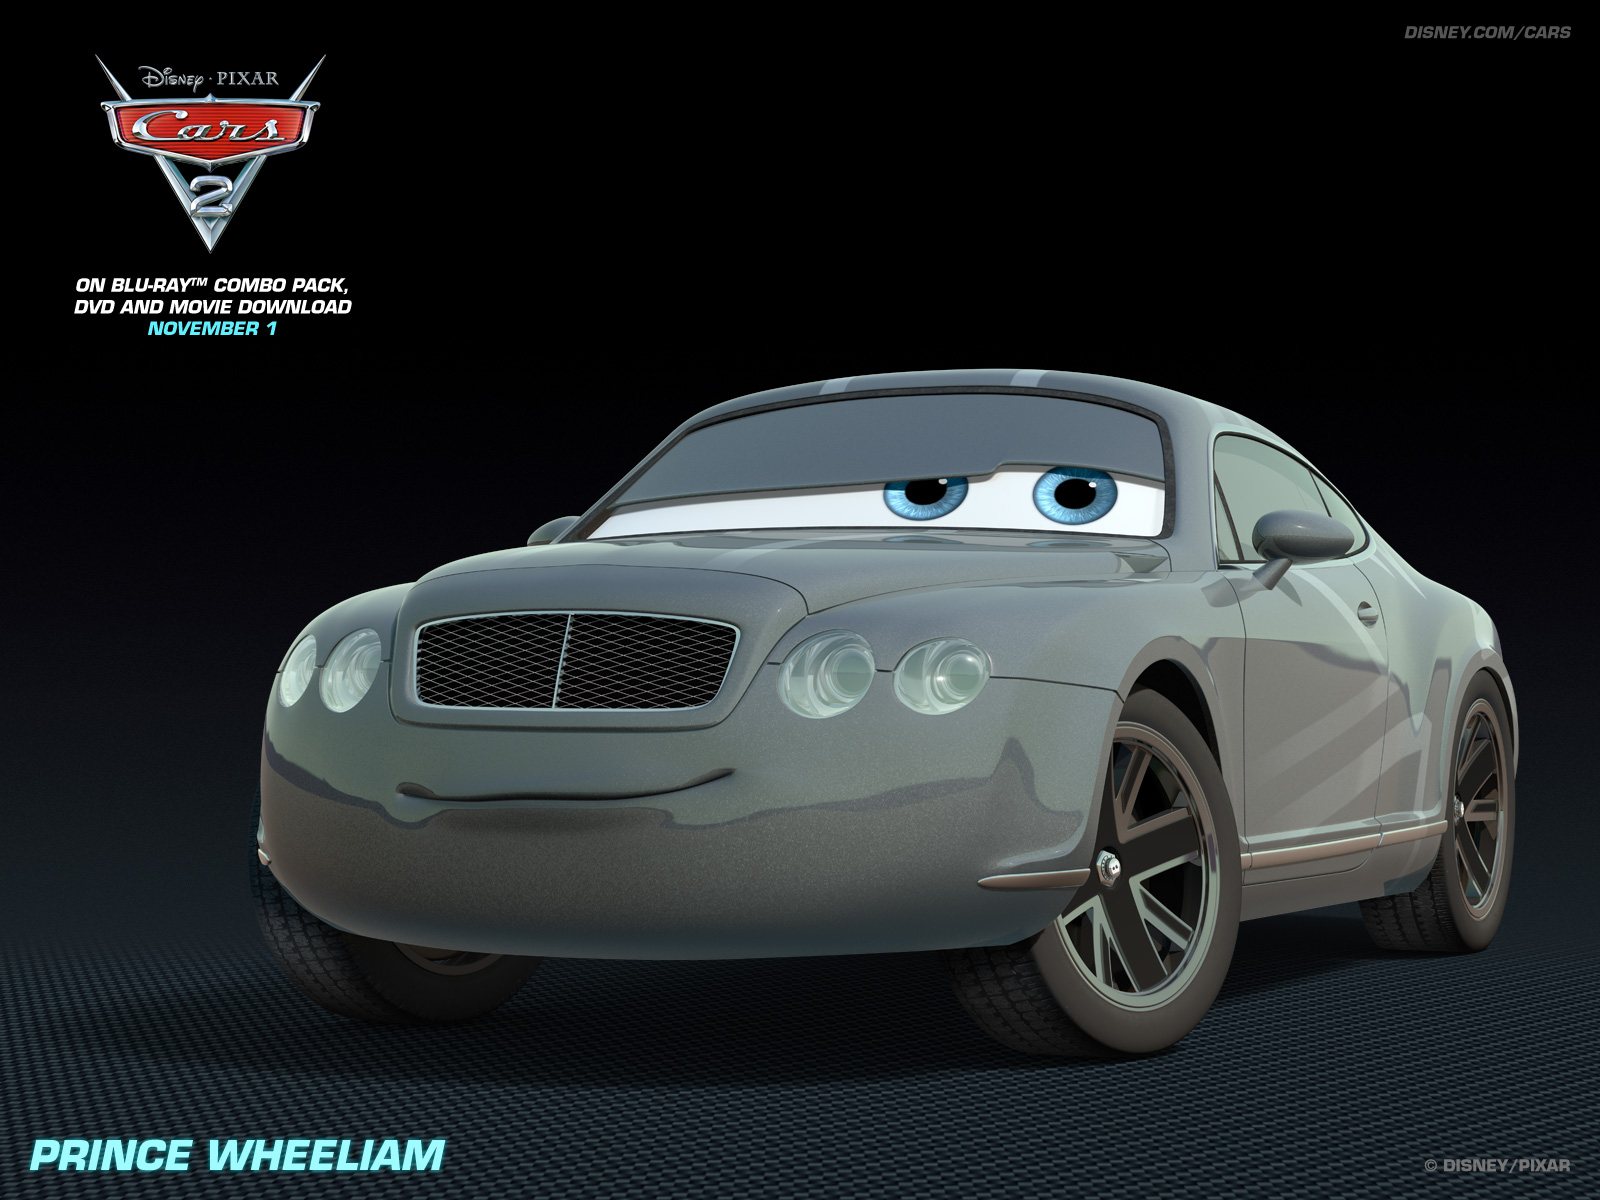 prince wheeliam disney pixar cars 2 wallpaper 28262213